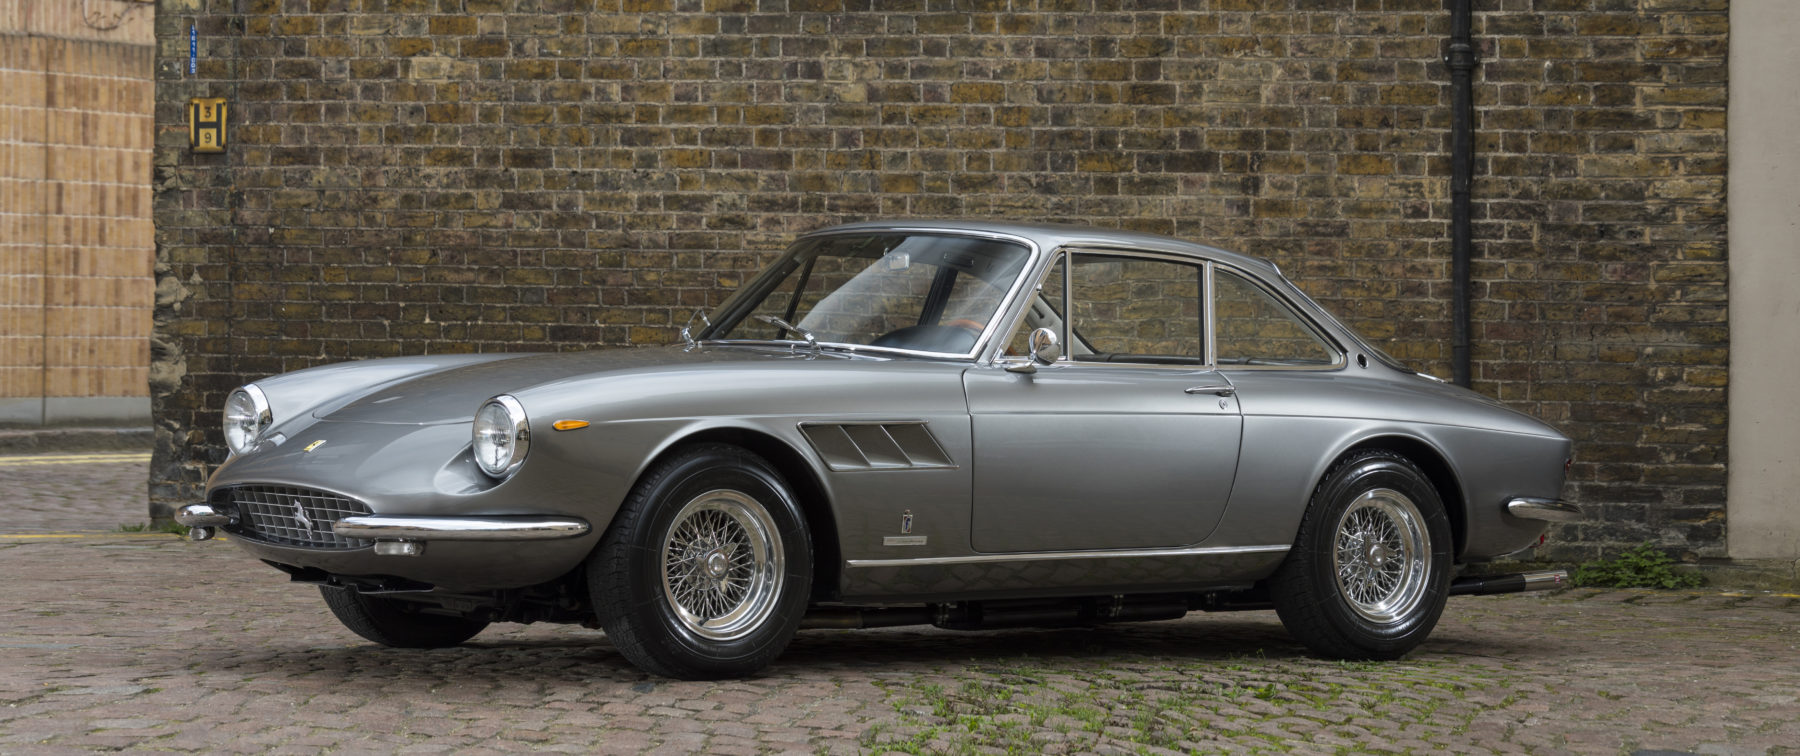 This Newly Restored Ferrari Brings Vintage Styling Into The 21st Century